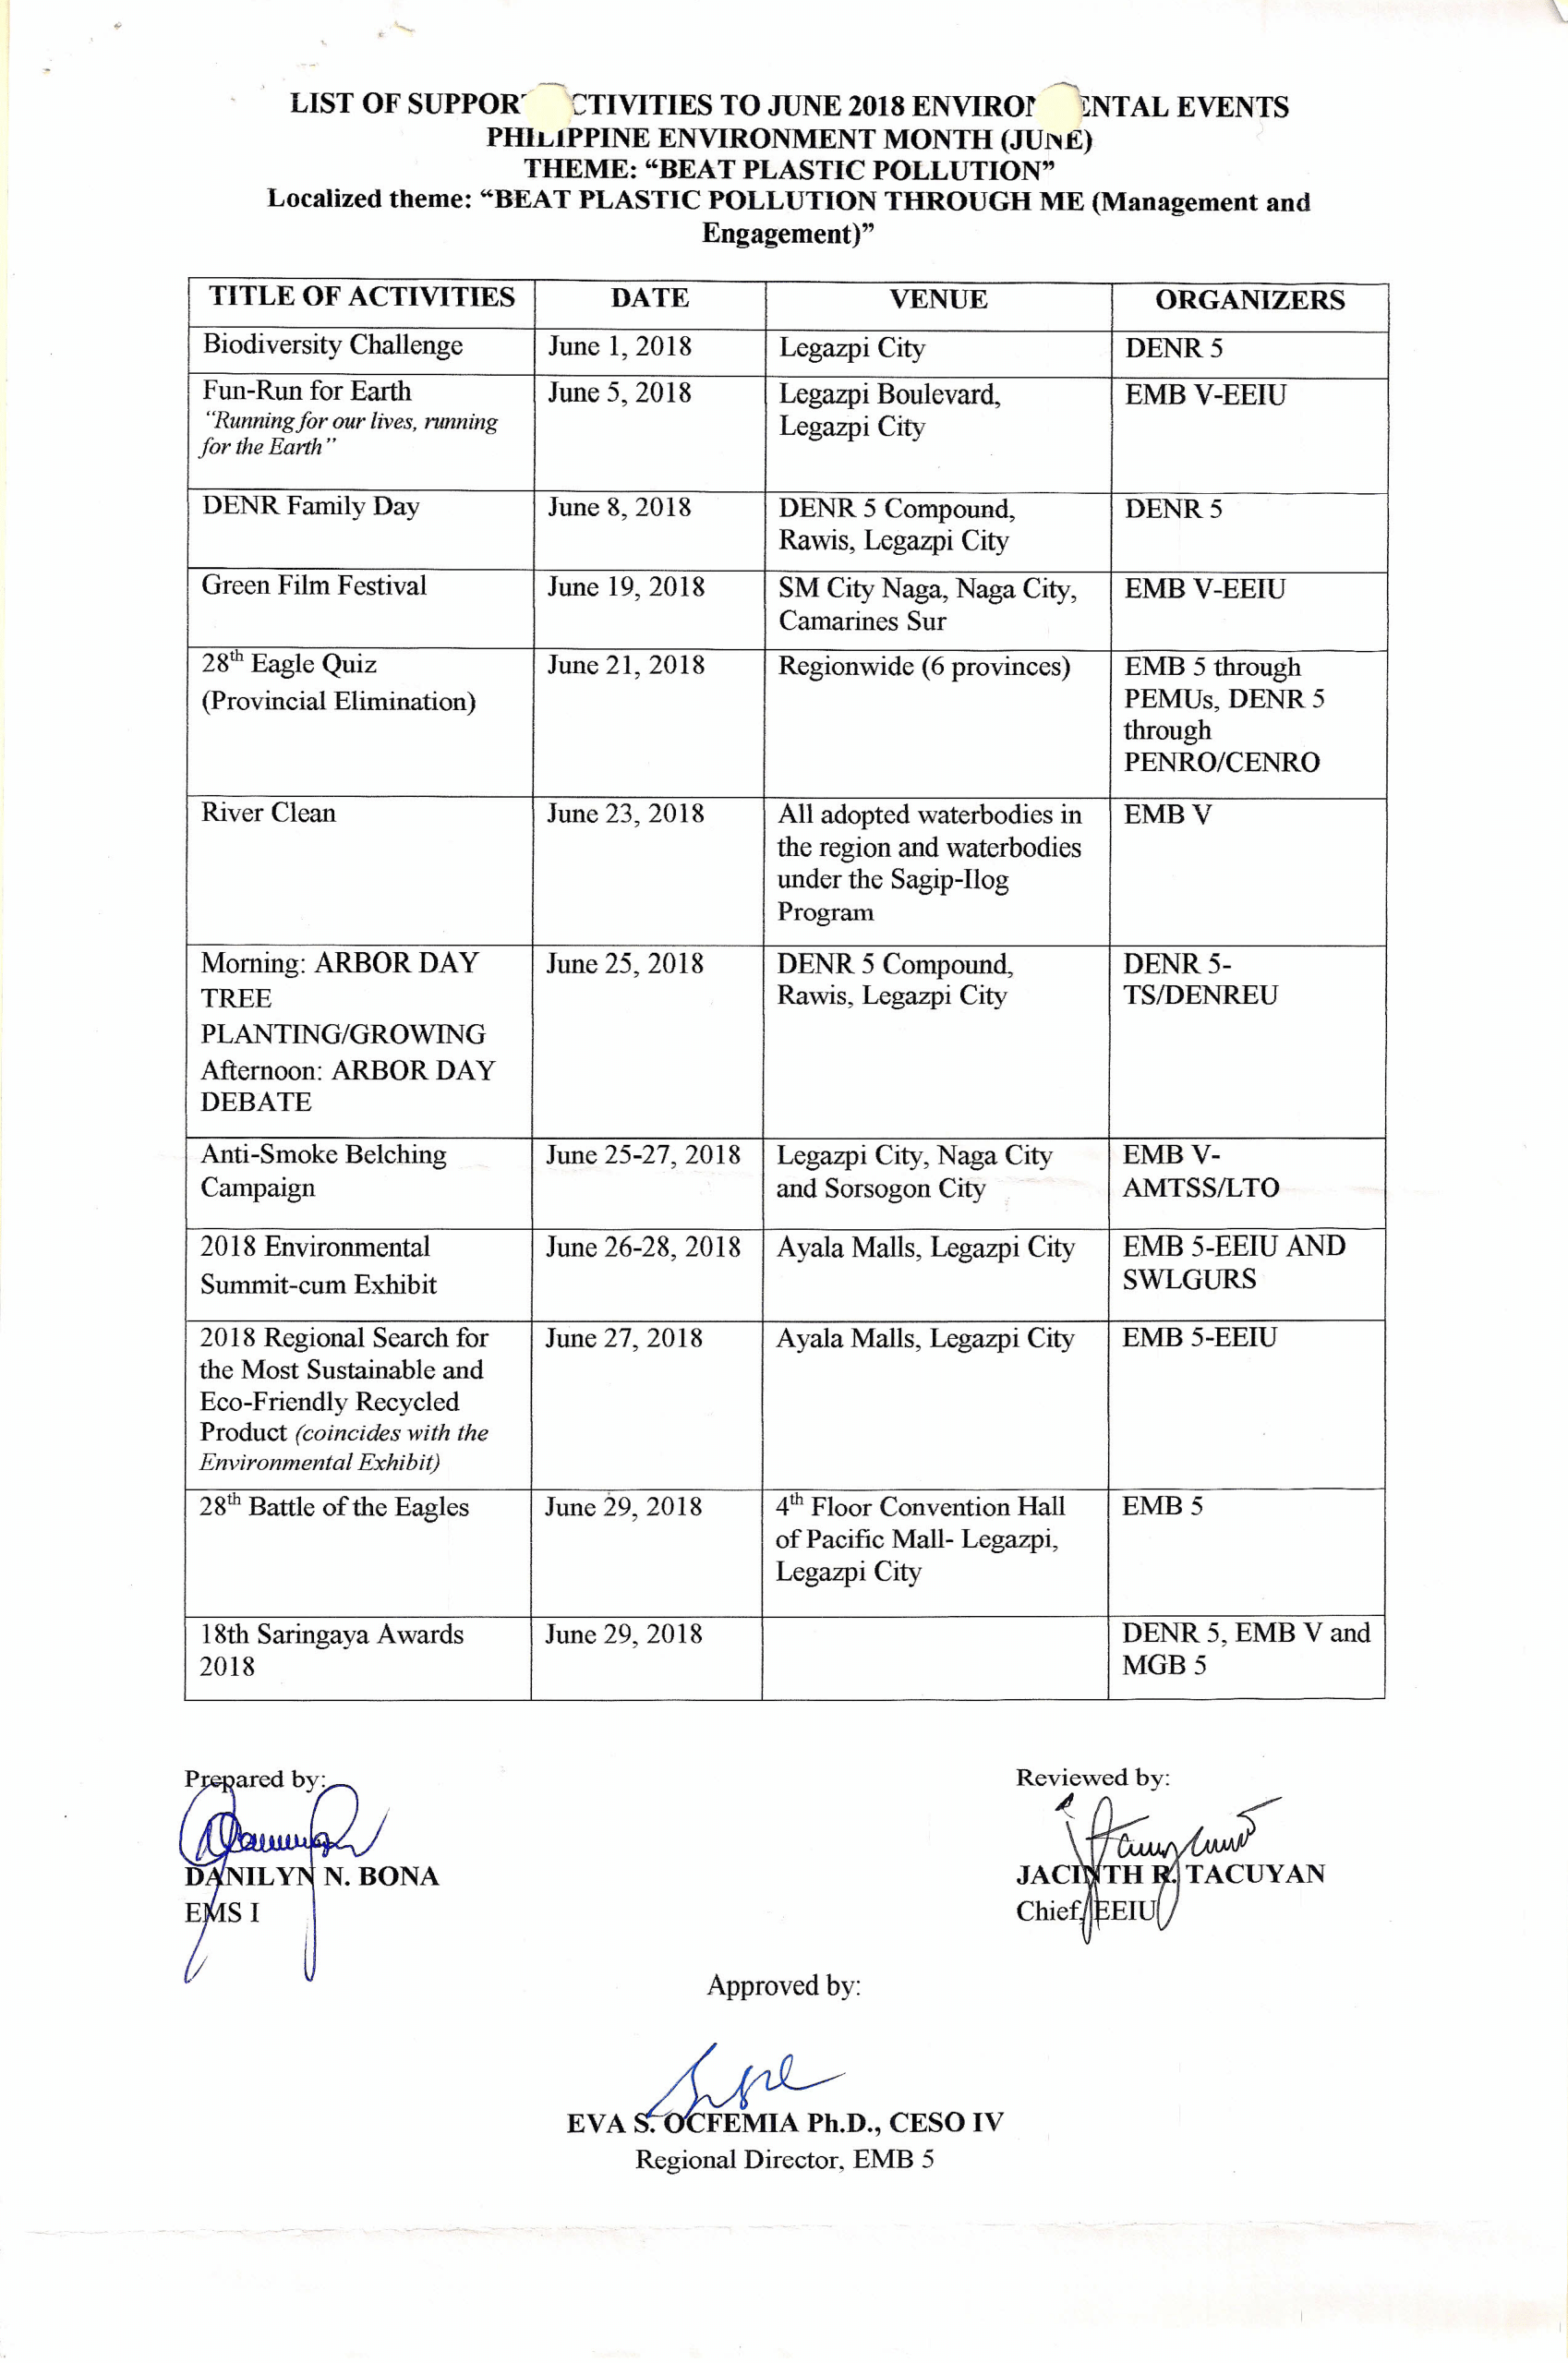 List of Support Activities to June 2018 Environmental Events